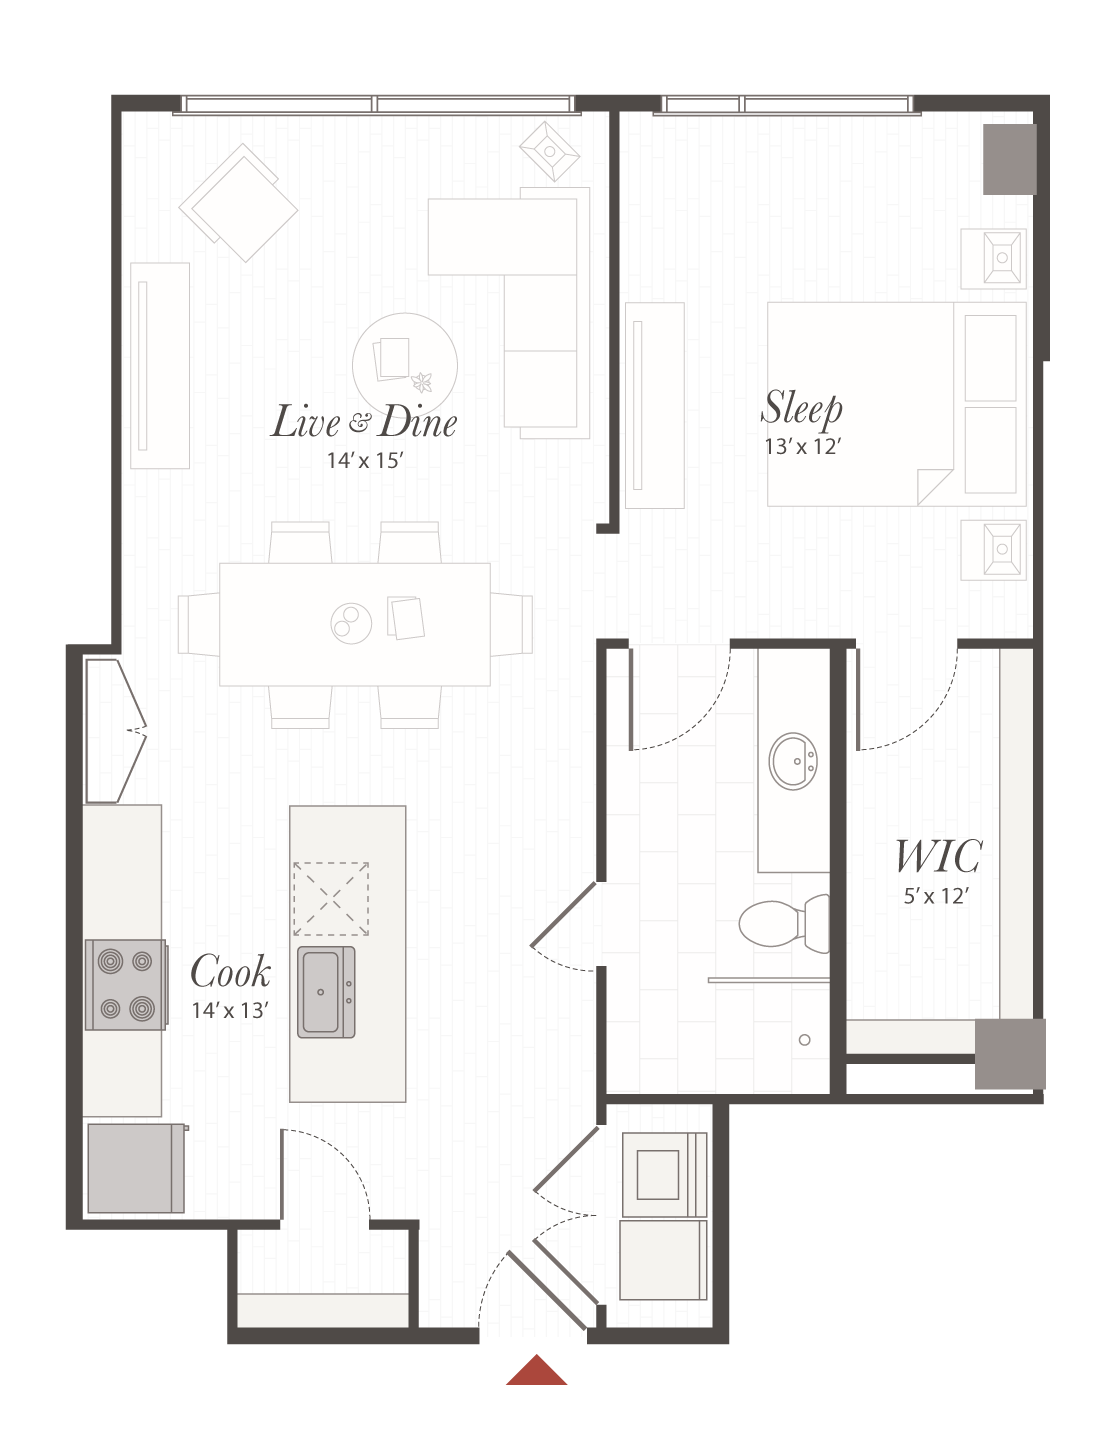 X3 Floor Plan 1 Bedroom Luxury Apartment Cincinnati Oh